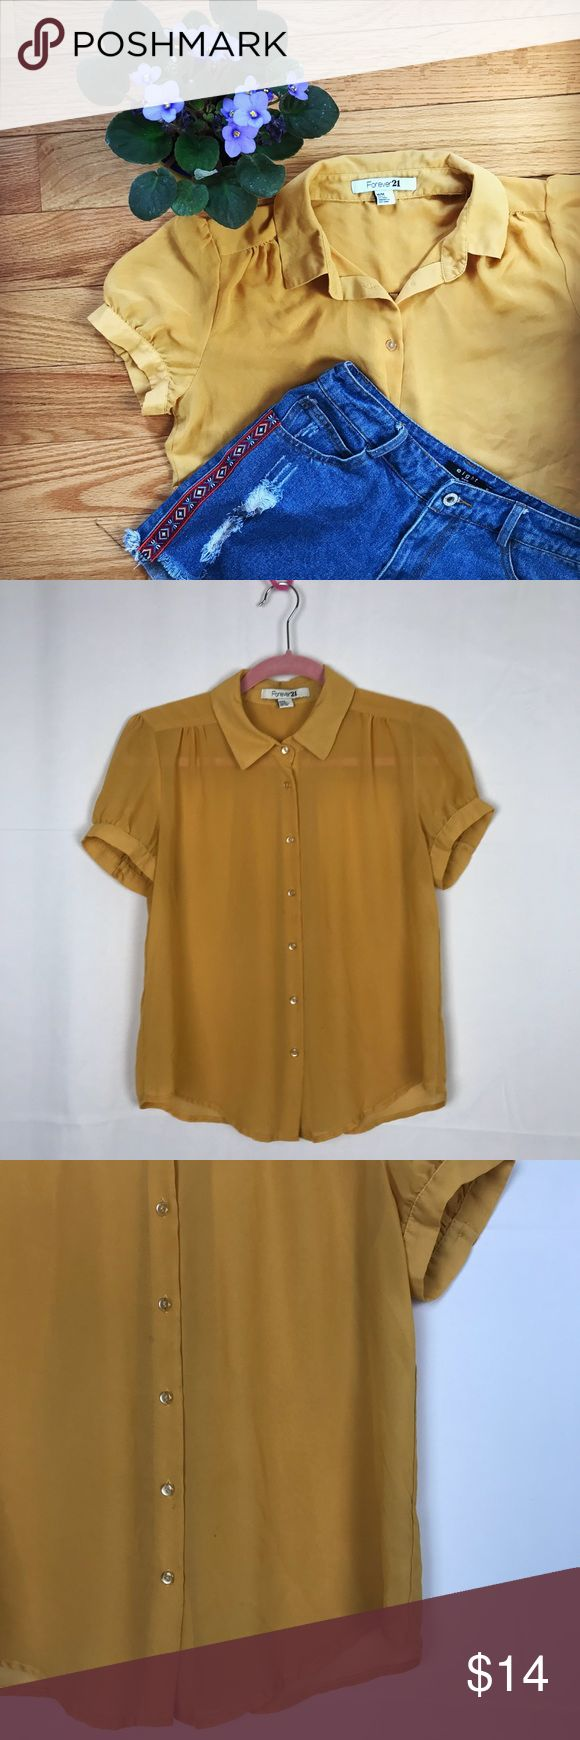 Forever 21 Mustard Yellow Chiffon Blouse I don't even think I've worn this once. I do this with a lot of my clothes so check out out my closet!  Let me know if you have any questions  No trades  All sales final Forever 21 Tops Blouses